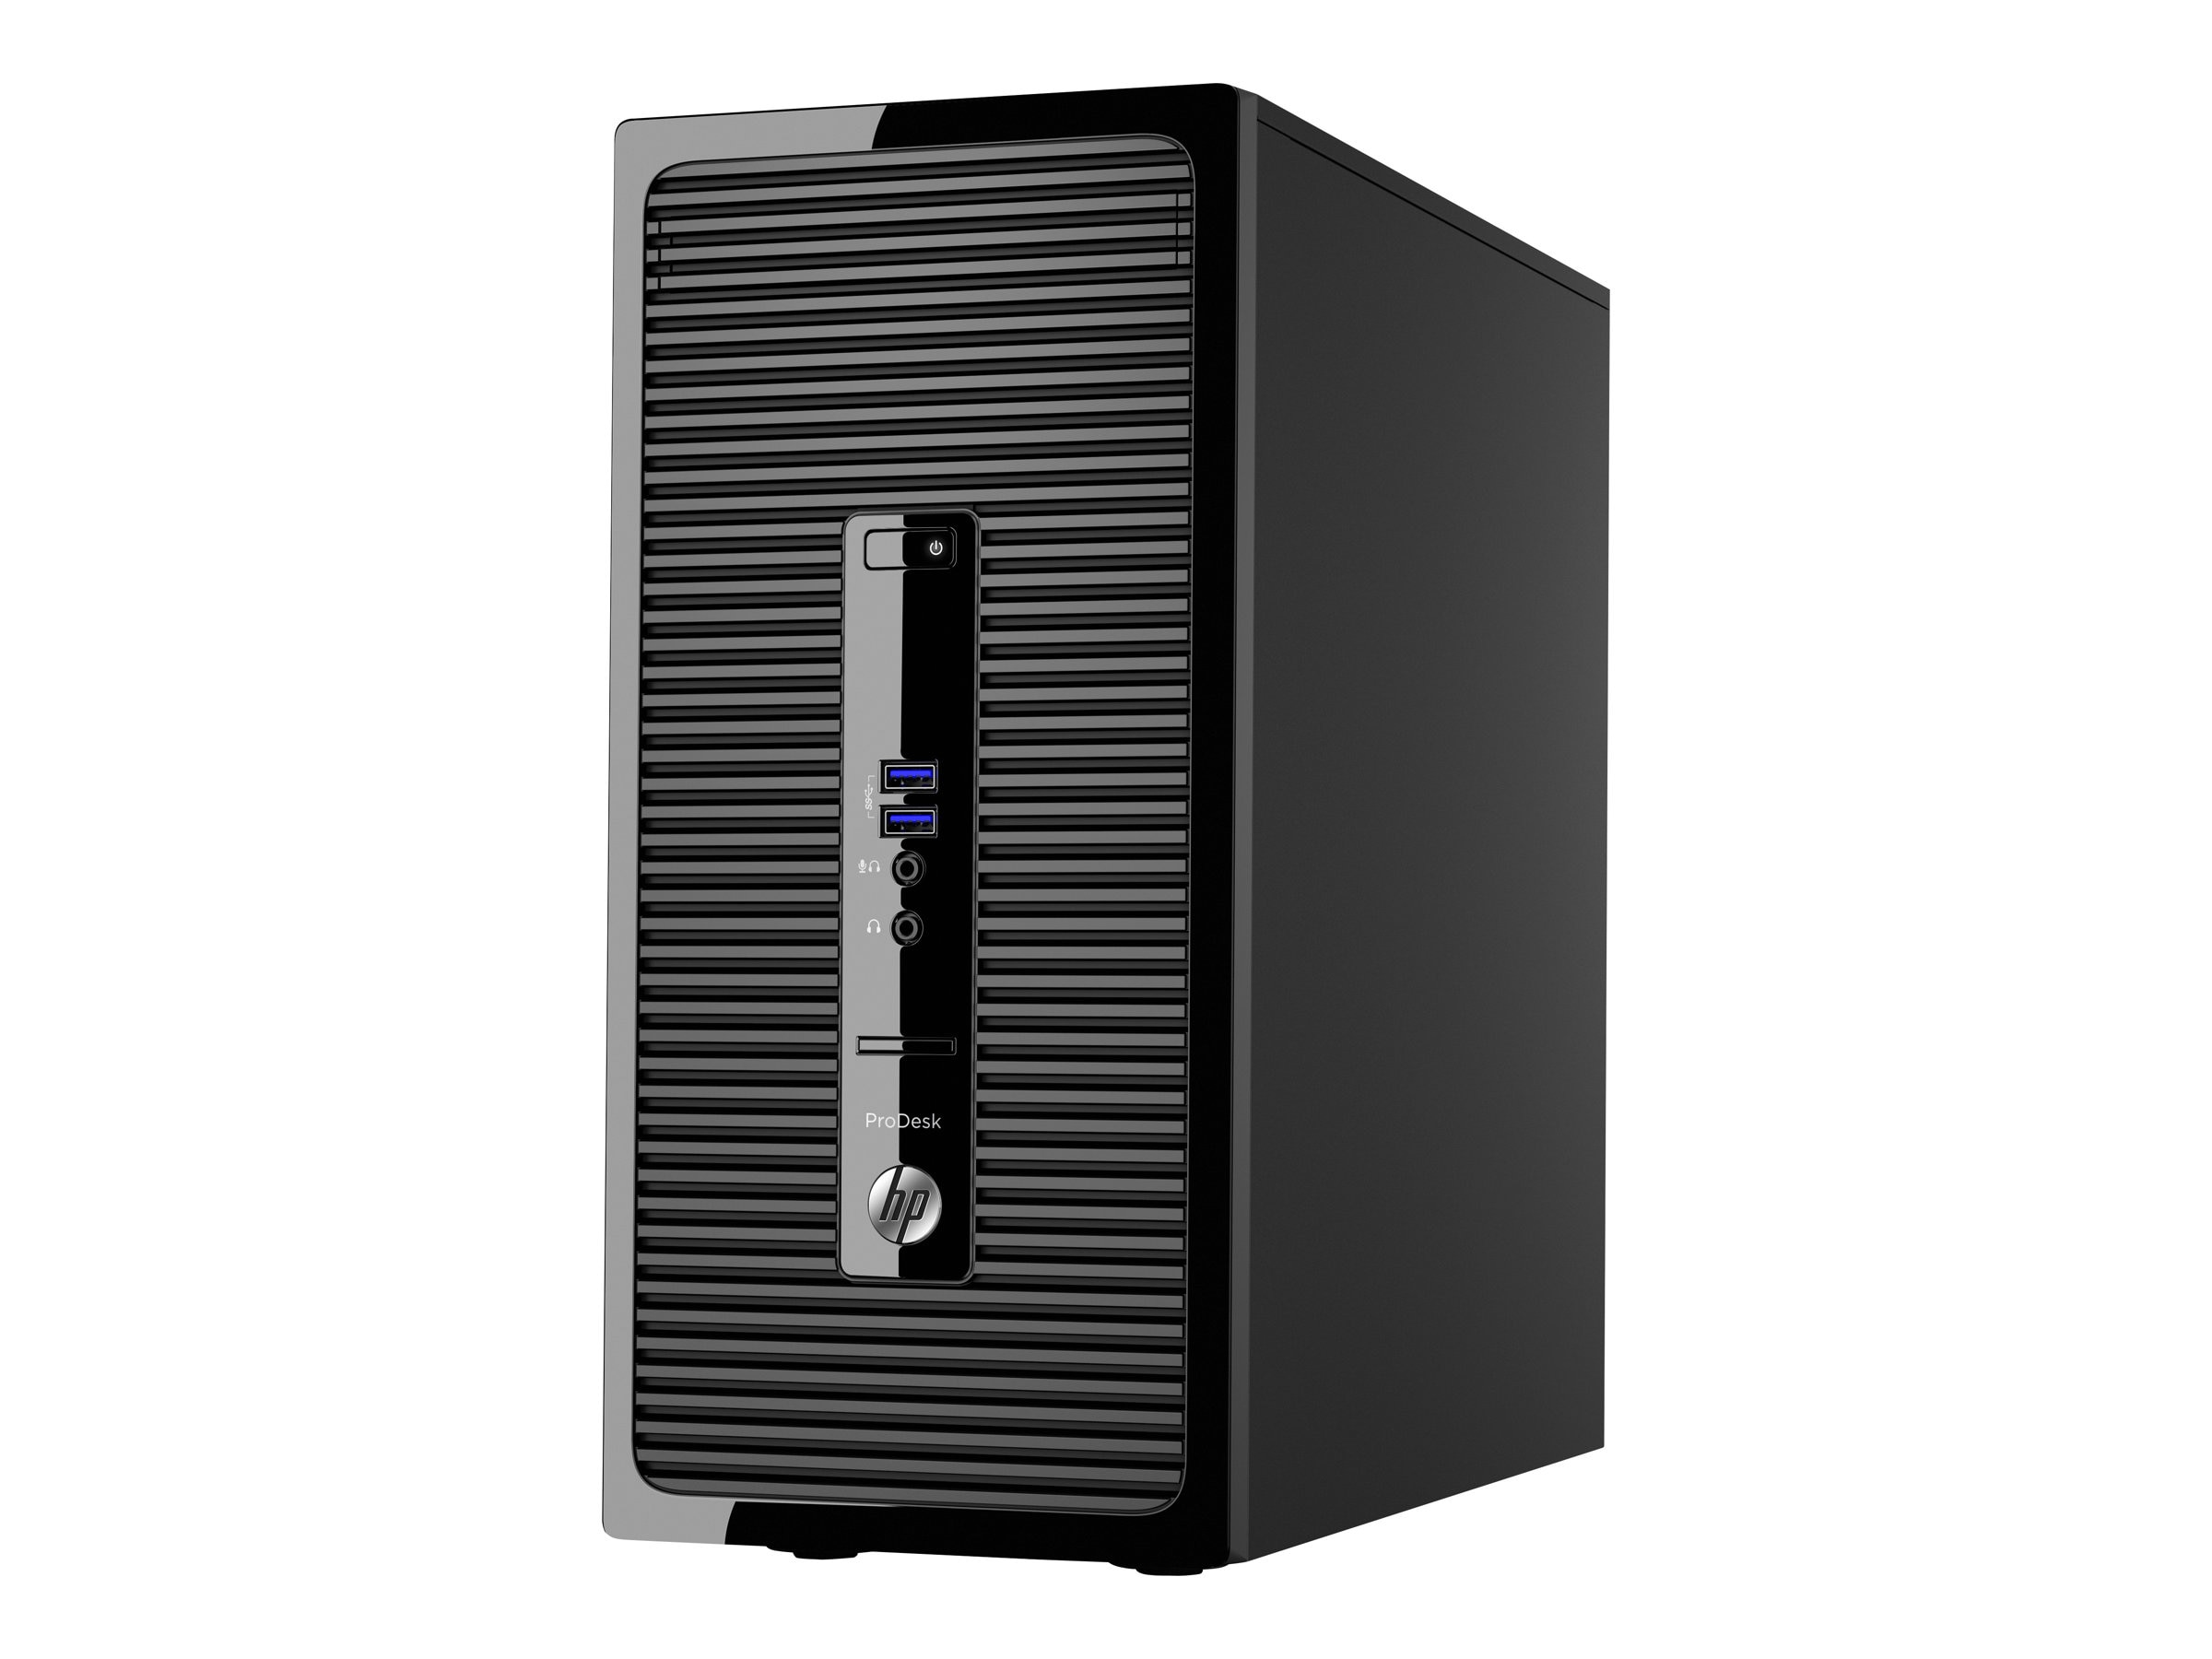 HP ProDesk 400 G3 3.7GHz Core i3 4GB RAM 500GB hard drive